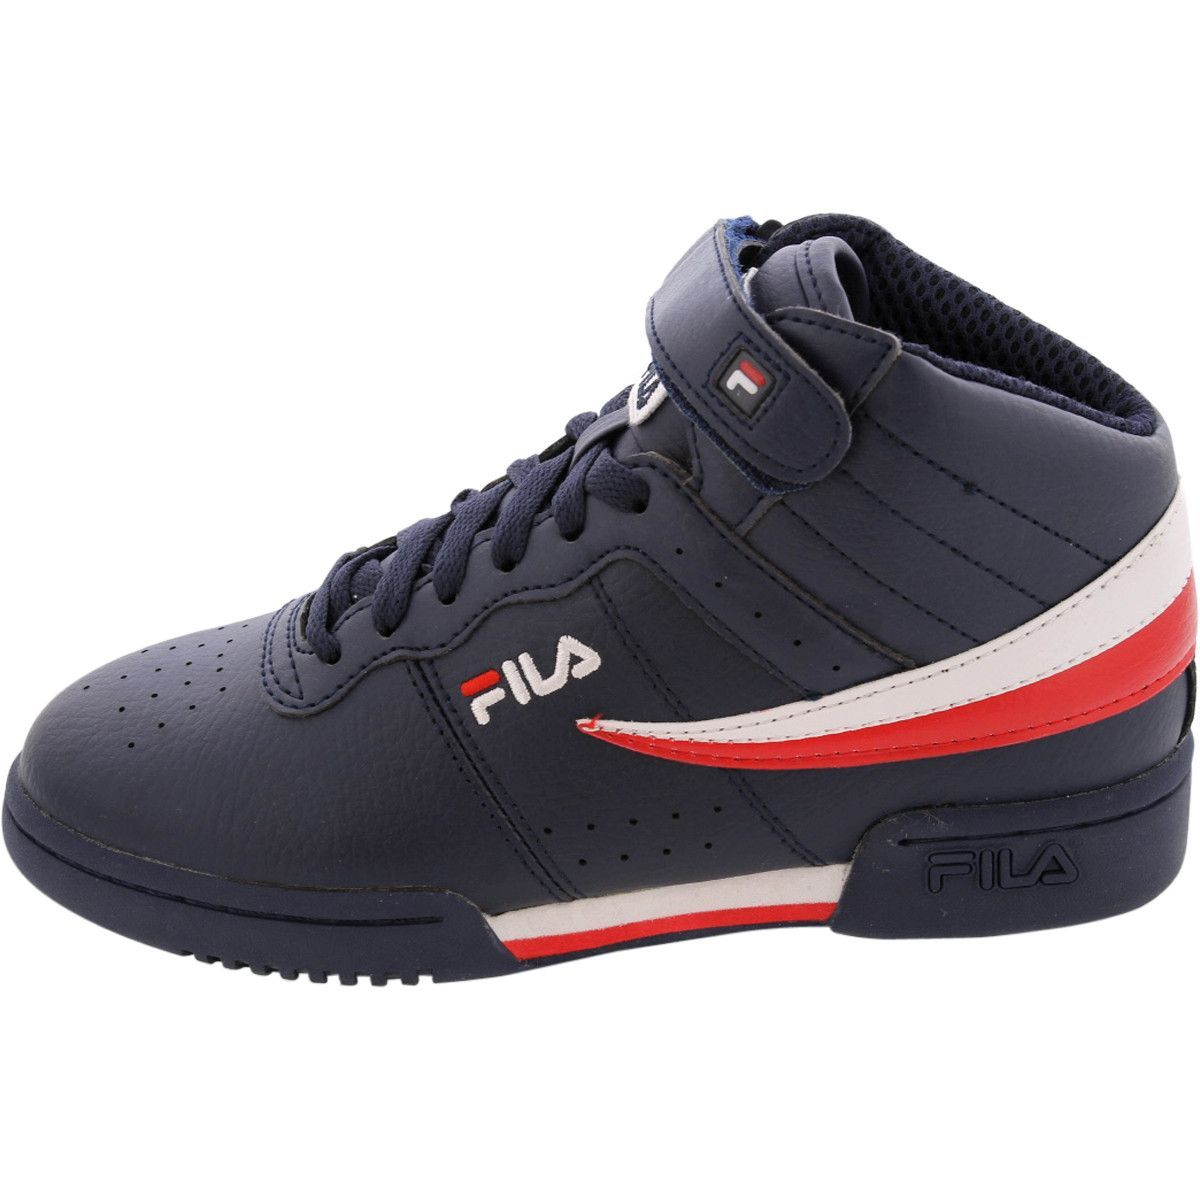 de8923506b90 Fila - Boy s F13 Mid Sneakers - Navy White